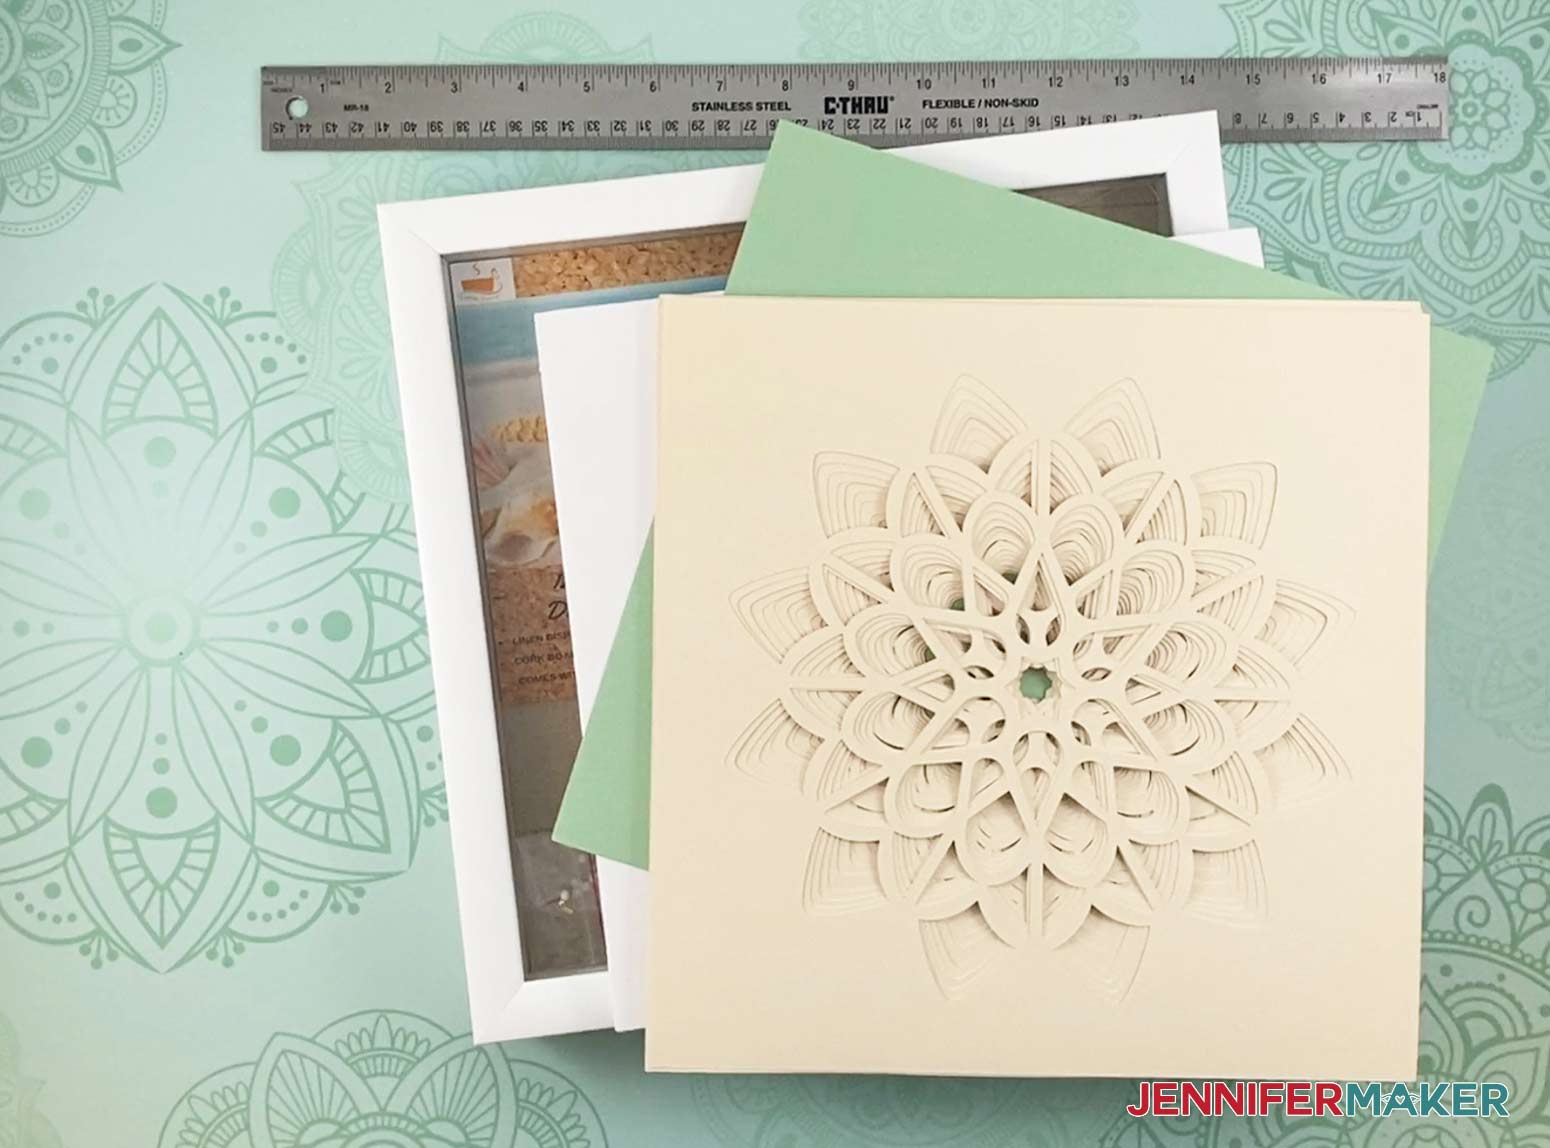 These are the supplies you will need to make my 3D layered paper cut art flower